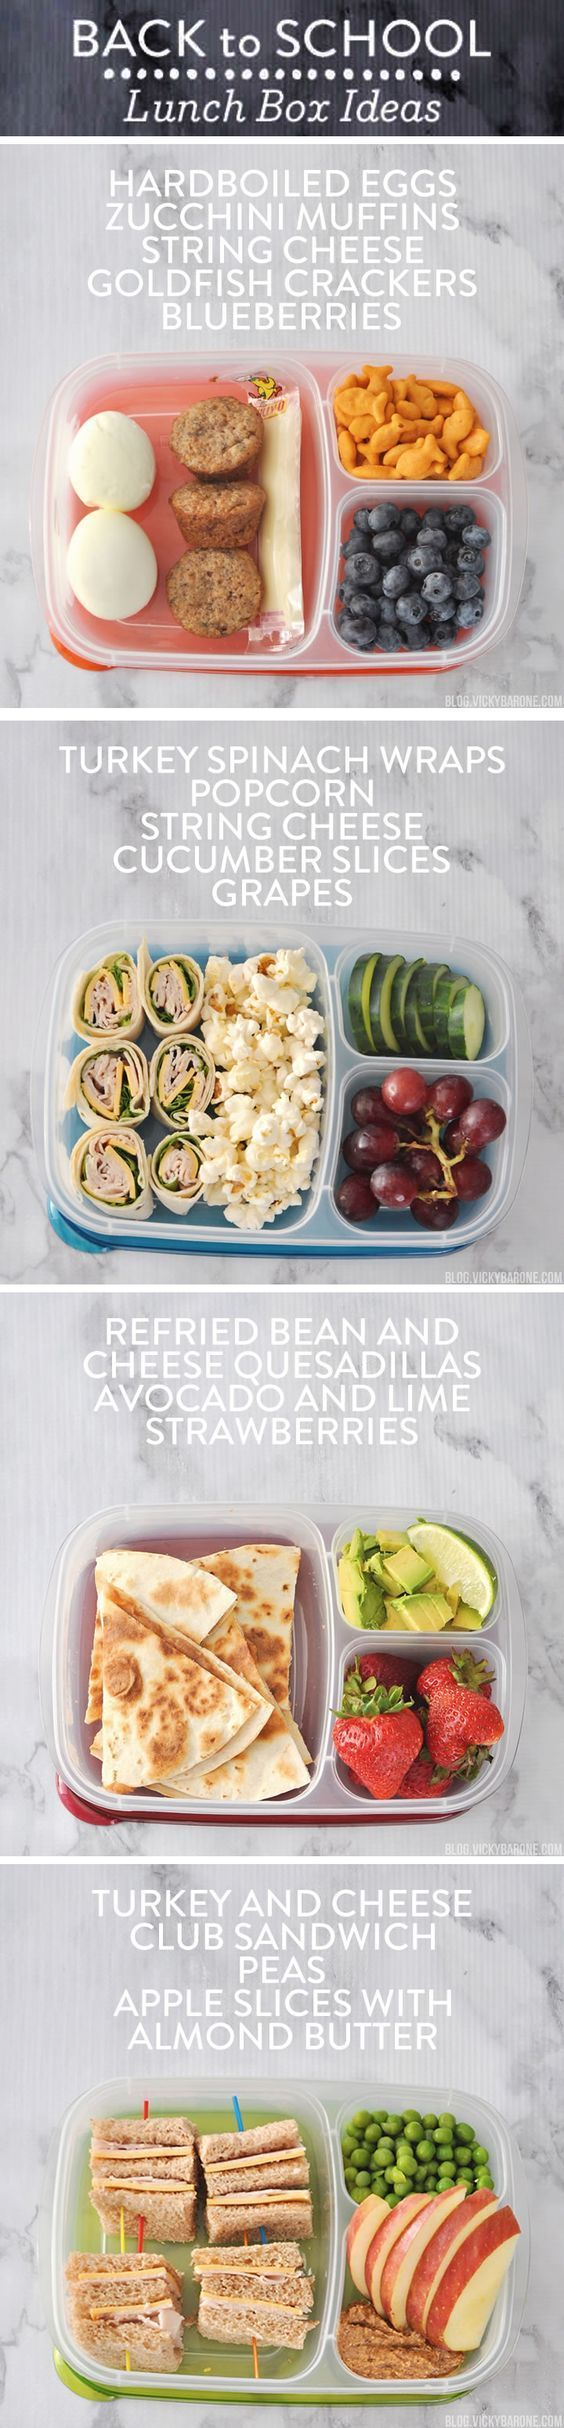 Back To School Lunch Box Ideas To Keep Your Kids Lunches Exciting And Healthy Shares Facebook Twitter Google Pi Lunch Snacks Healthy Snacks Baby Food Recipes